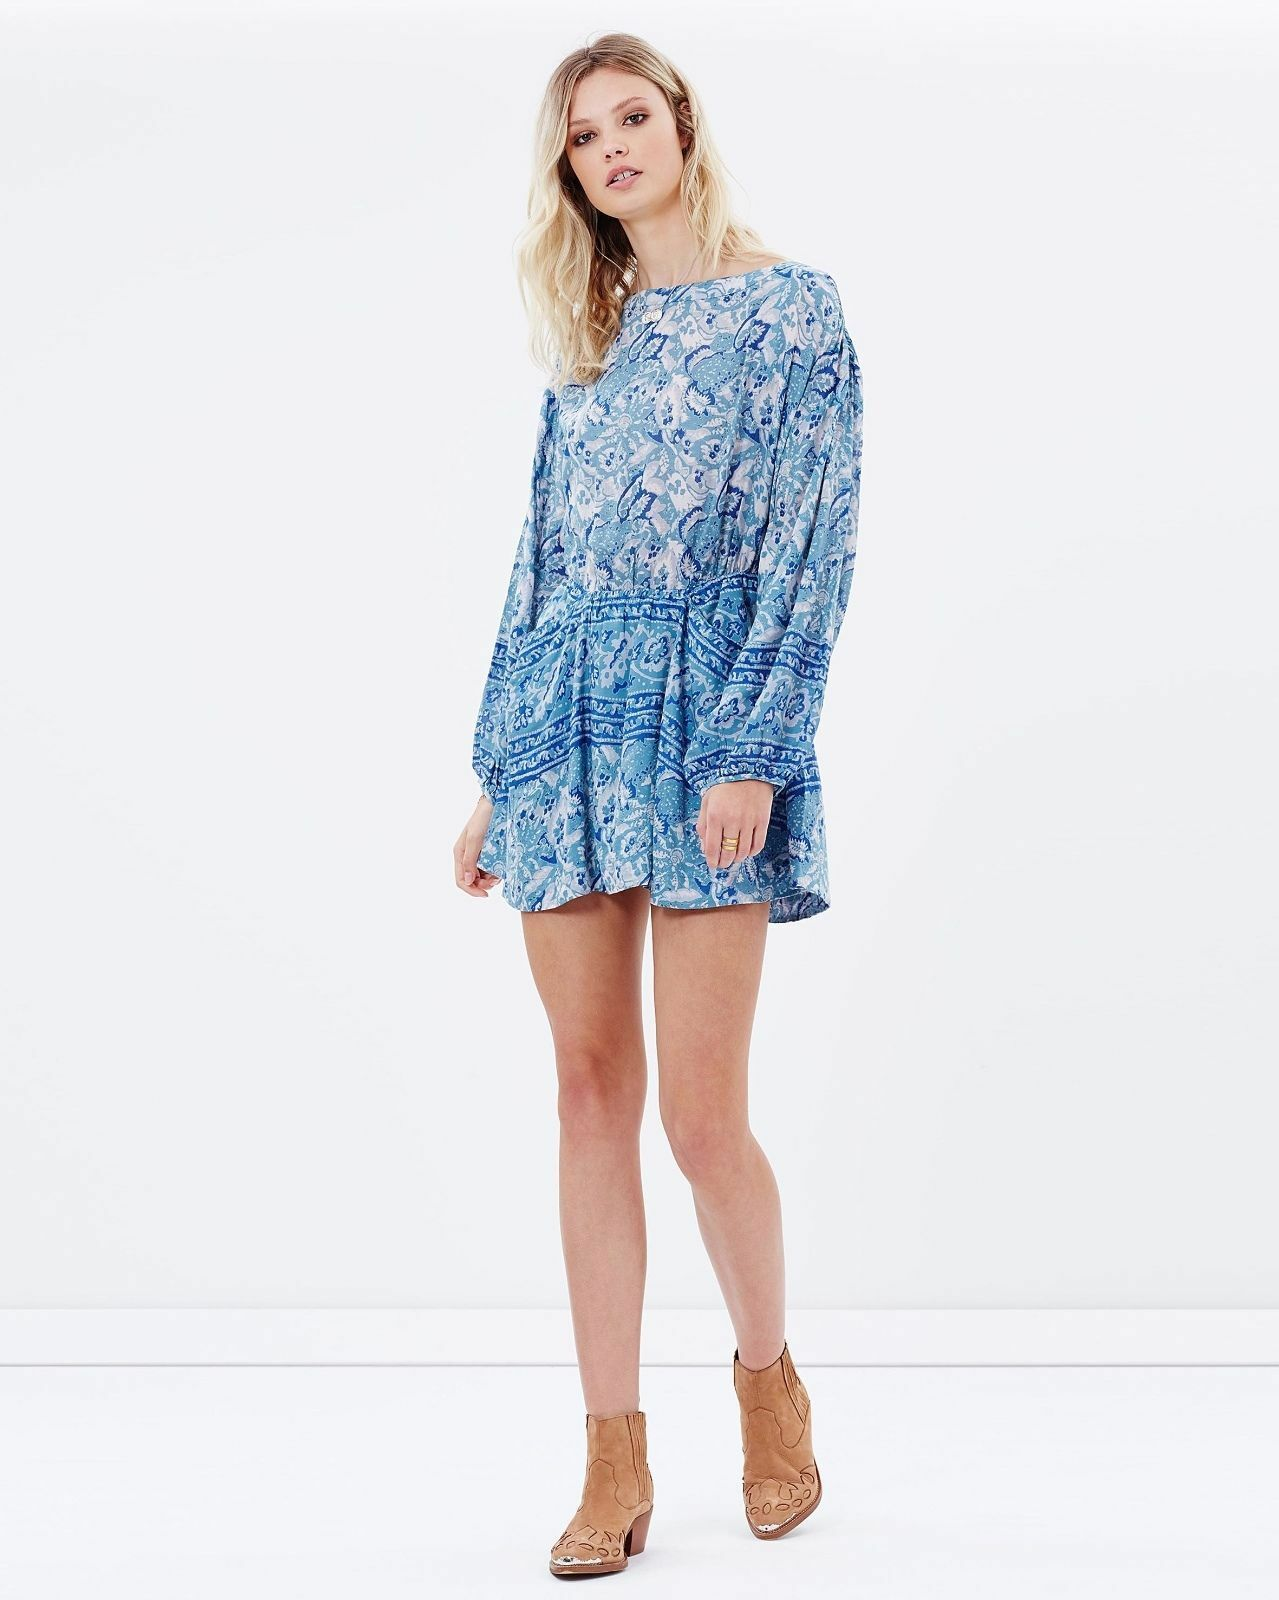 dfe4966a78ee8 New Free People Sheer bluee Print Floral Dress Washed bluee XS Sun  nxwrid2311-Dresses